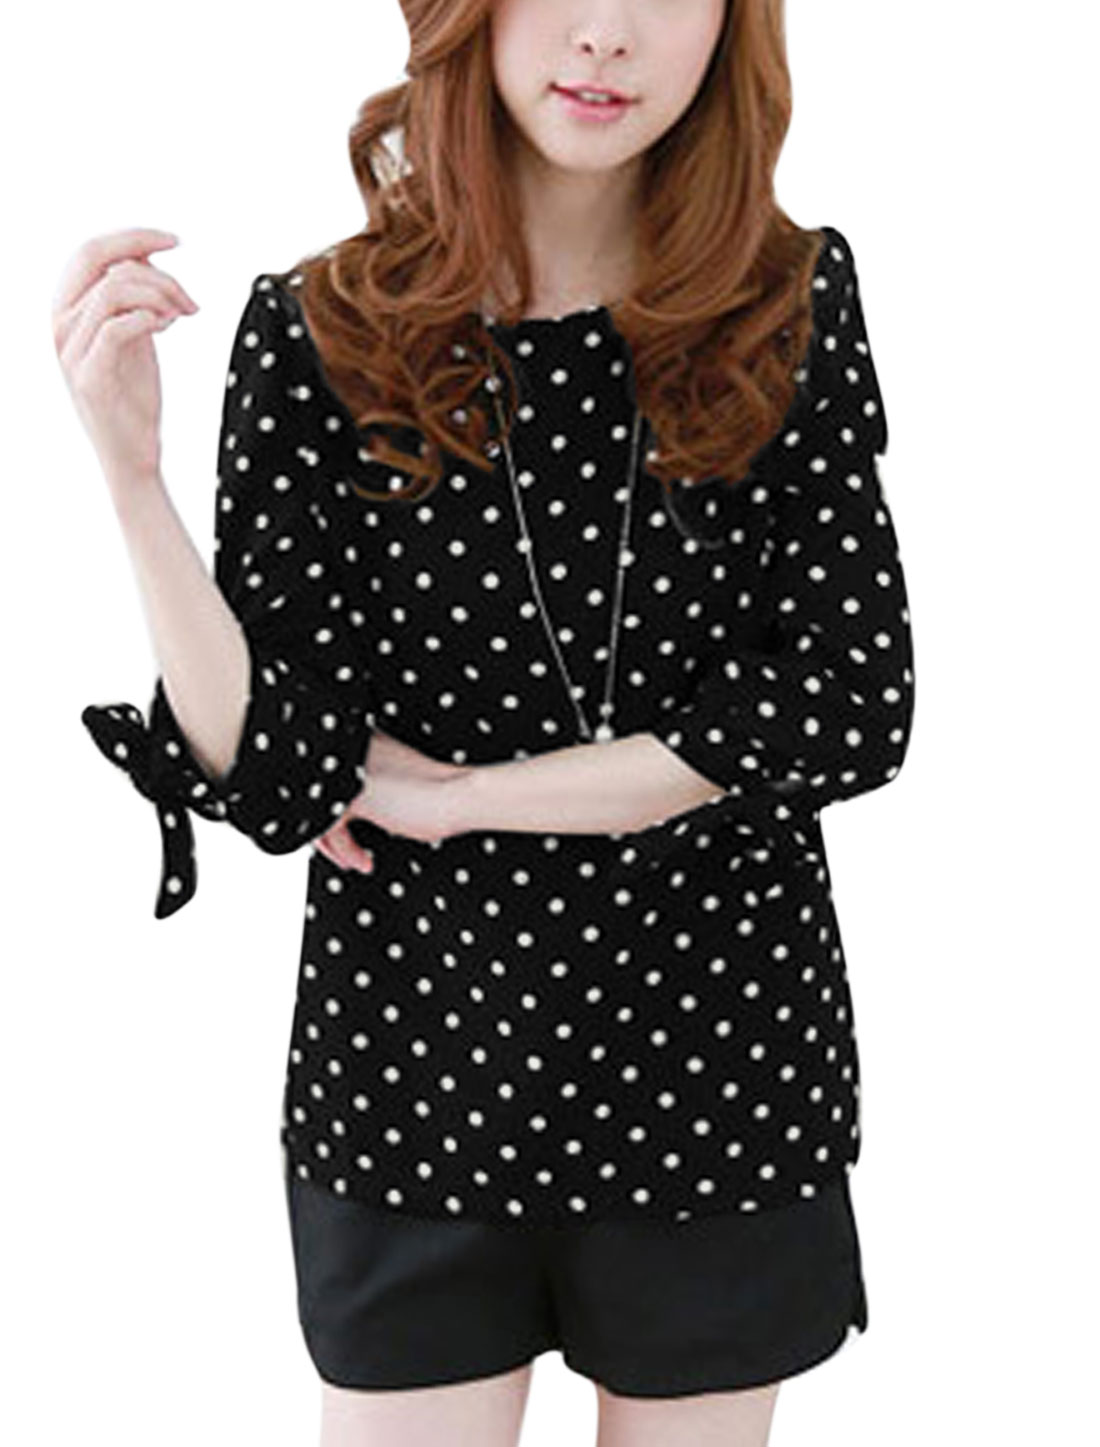 Women Dots Pattern 3/4 Sleeves Round Neck Casual Shirt Black M